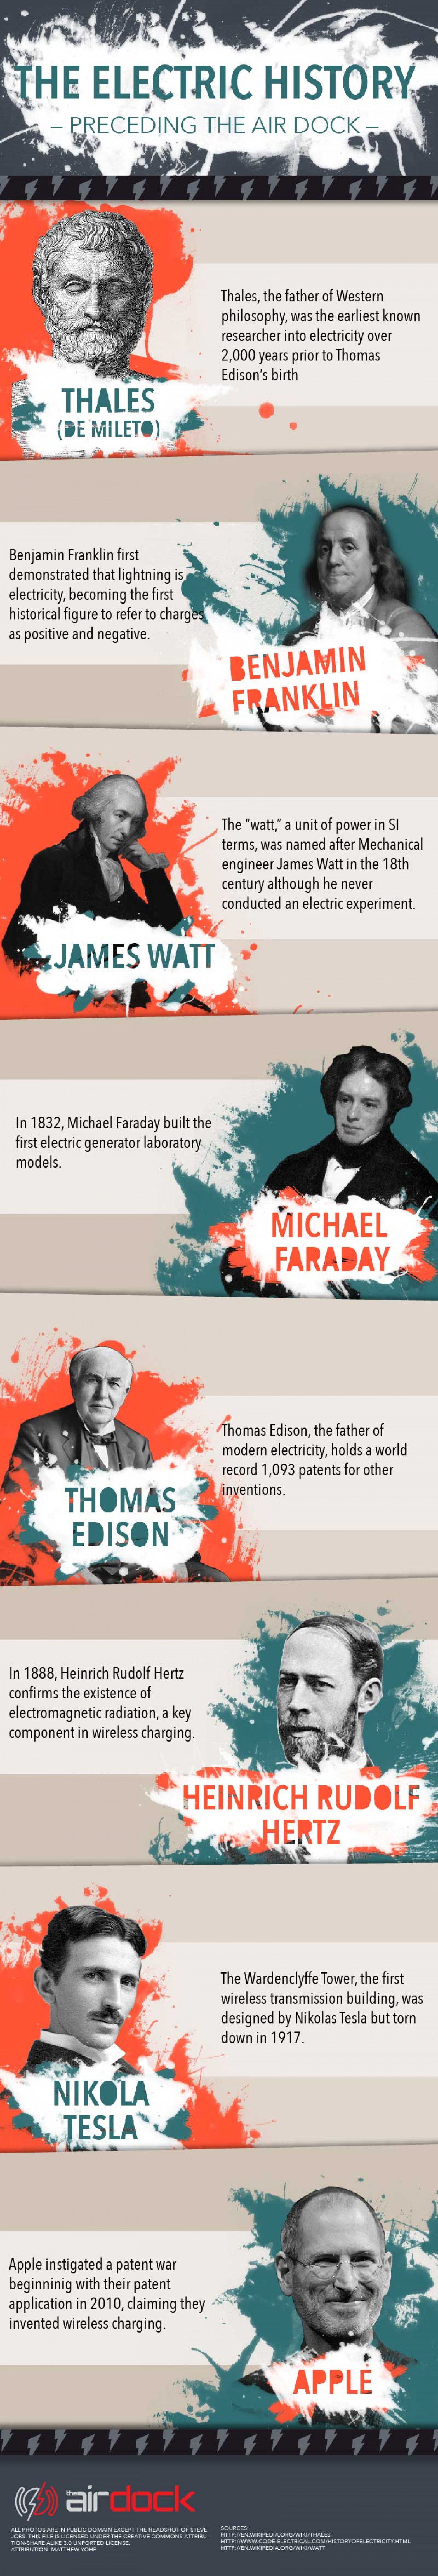 The Electric History Infographic